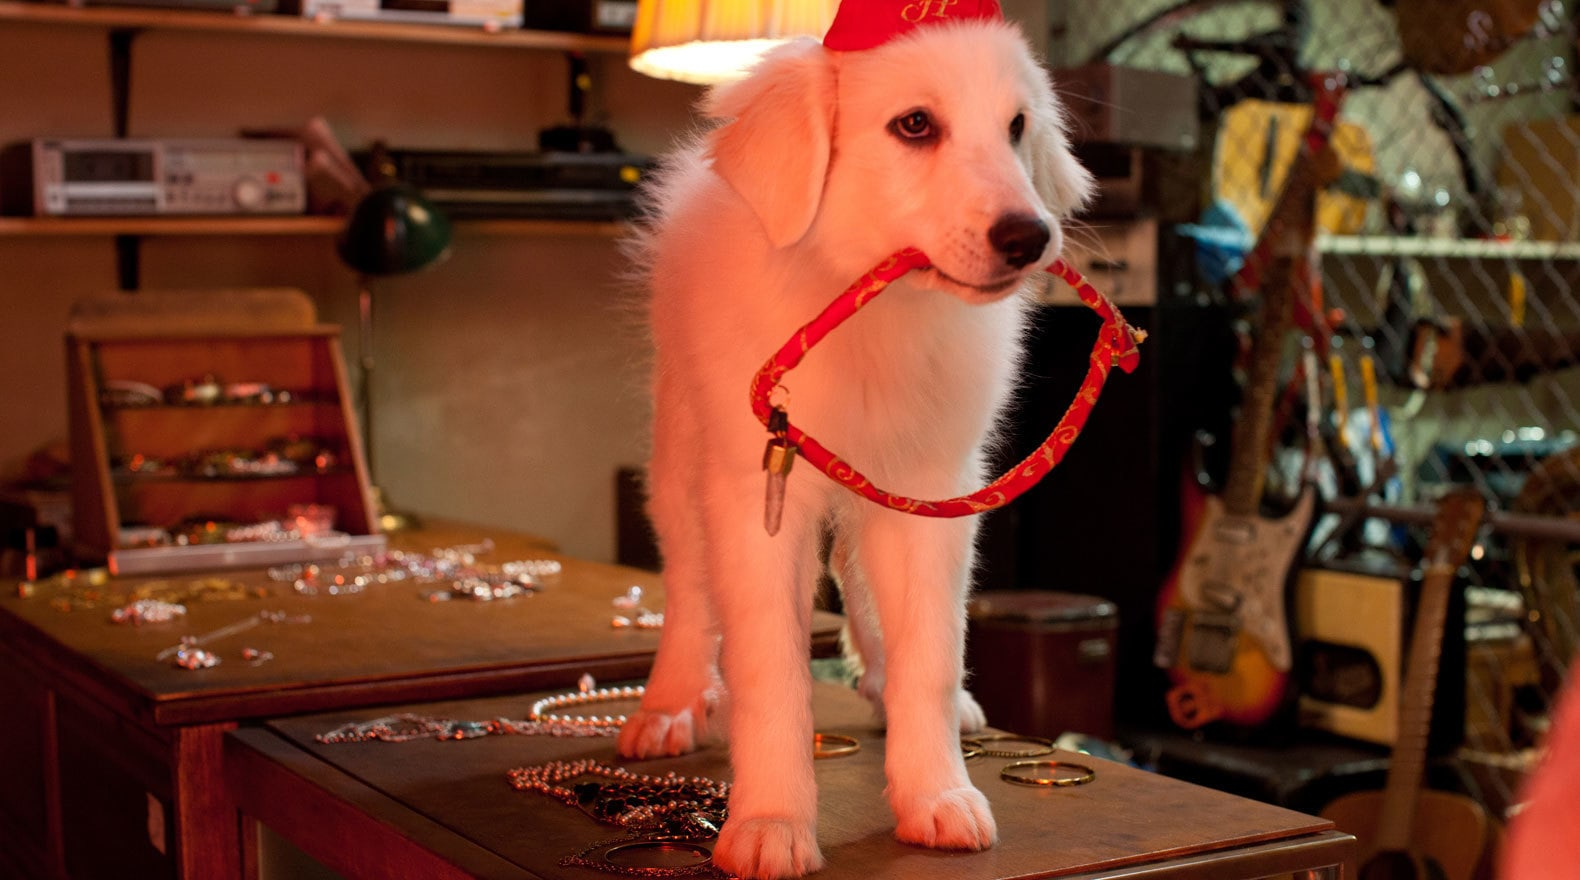 Santa's Dog holding a red rope